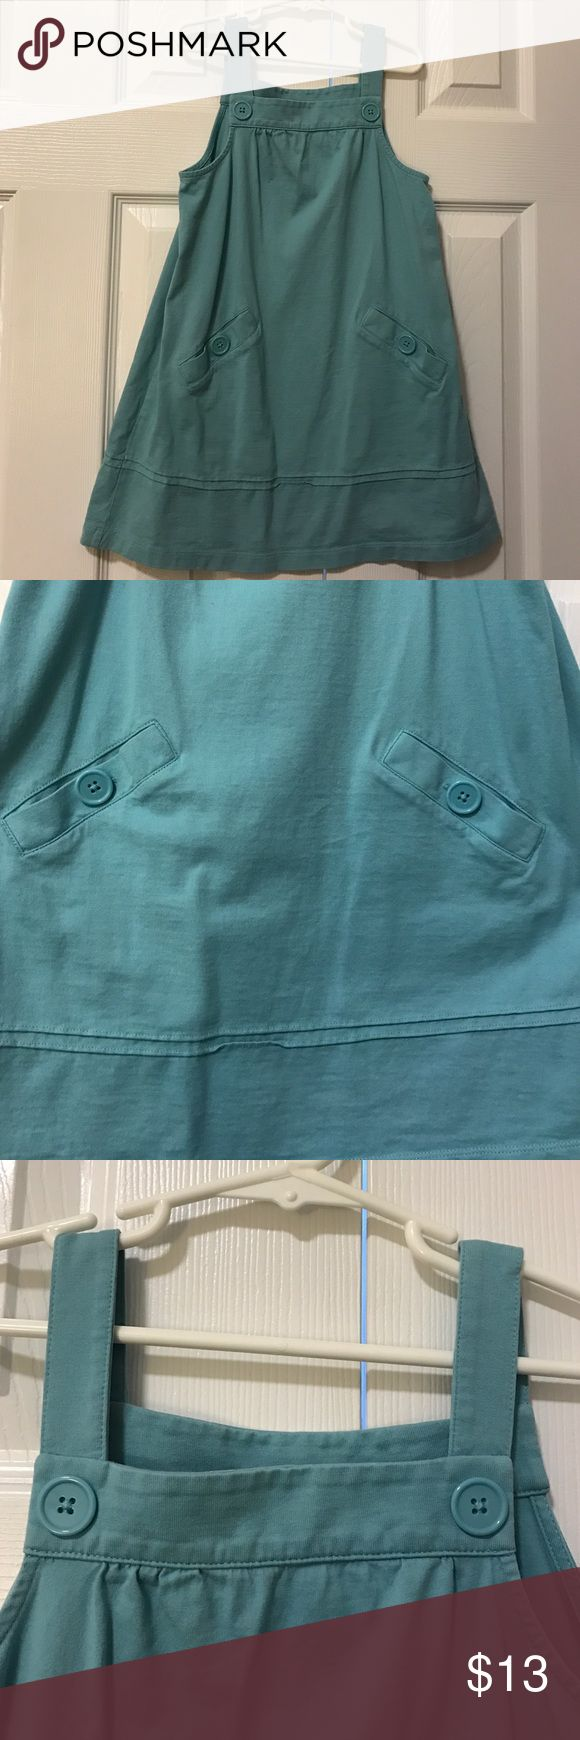 Hanna Andersson light blue jumper with pockets Size 110 is a 5t. Light blue jumper with button closure front pocket detail can be worn alone or with a shirt underneath Hanna Andersson Dresses Casual